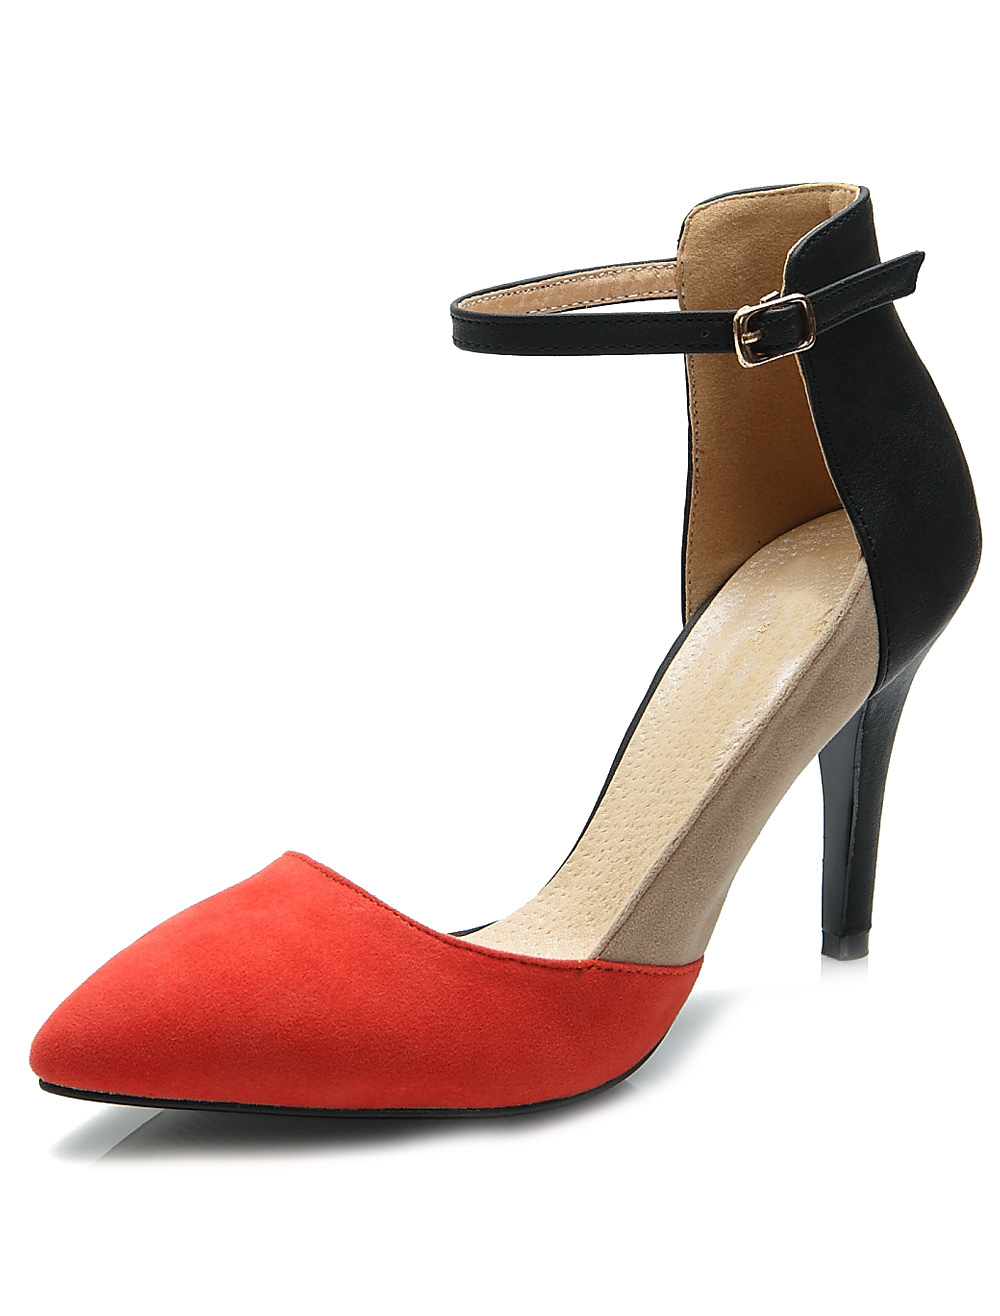 Buy Pretty Red Stiletto Heel Suede Leather Women's Pointy Toe Heels for $35.19 in Milanoo store